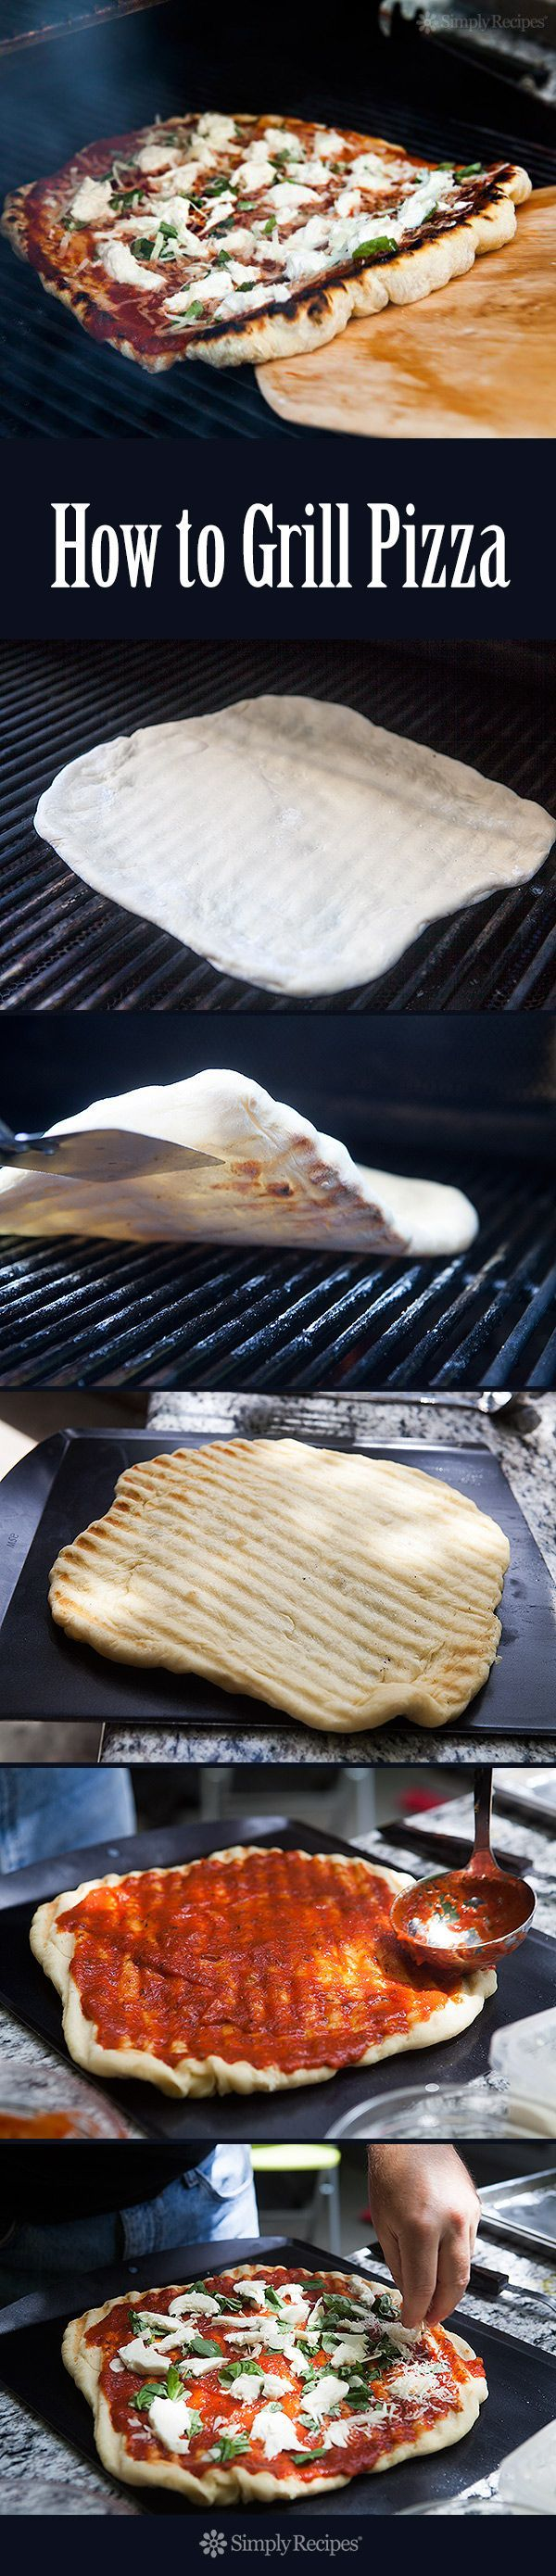 Grilling pizza is the easiest way to make pizza, and you get that great grilled flavor too. NO, the dough does not fall through the grates! See the step-by-step instructions on http://SimplyRecipes.com